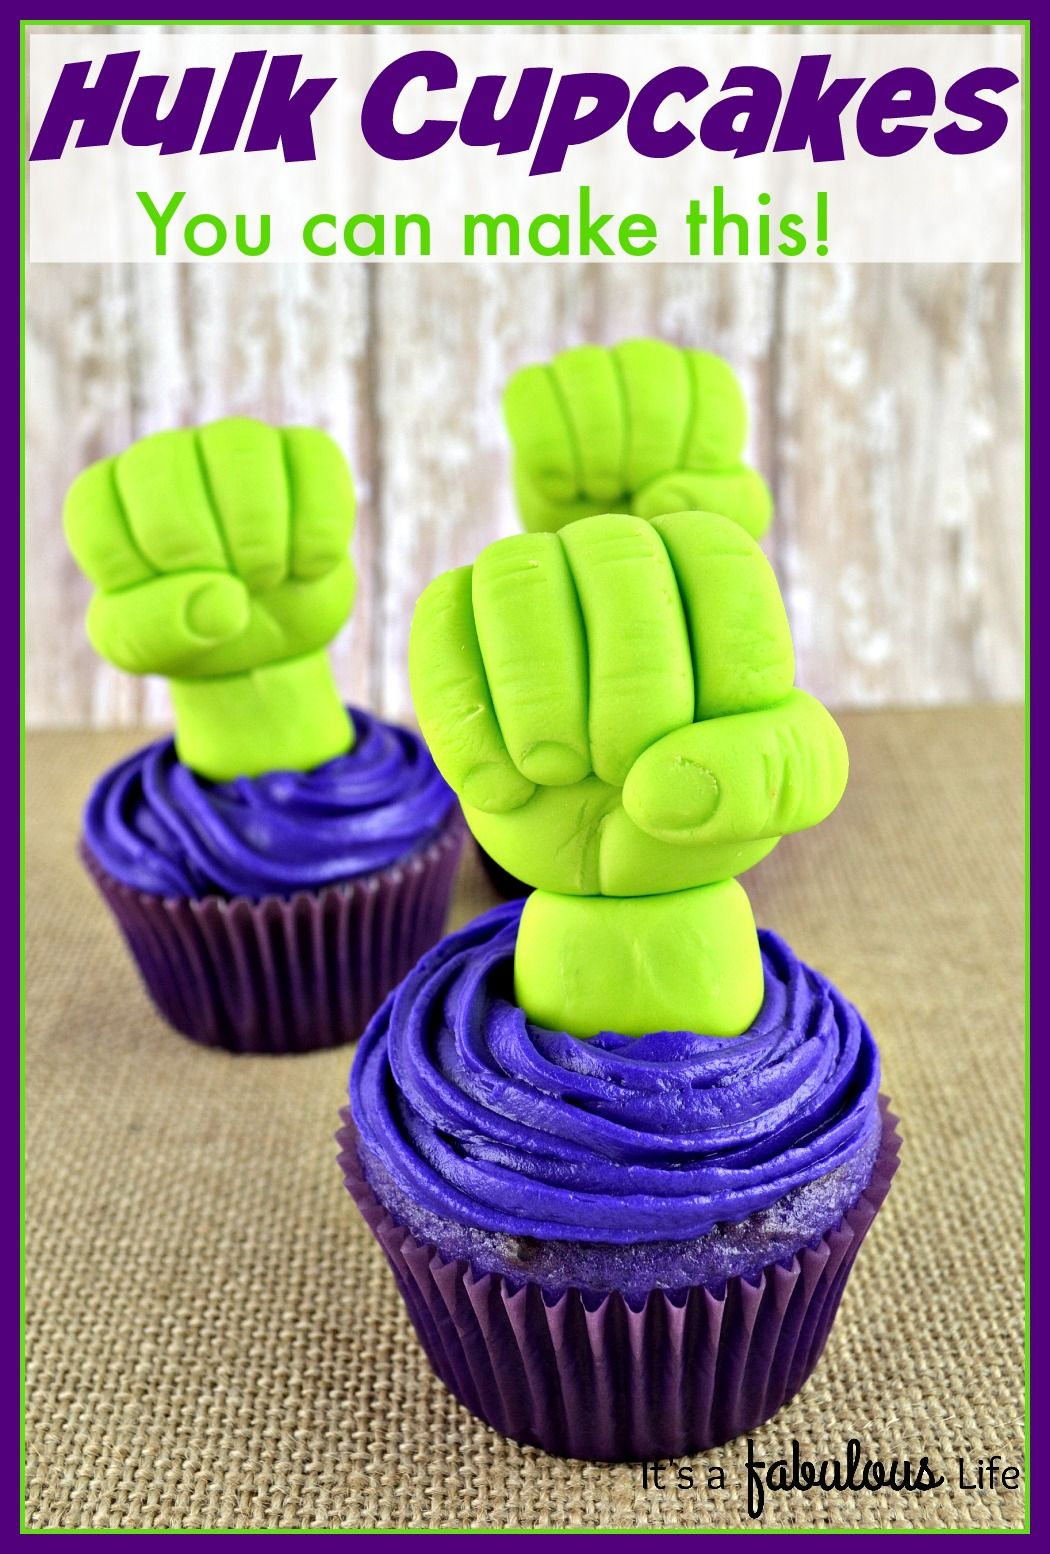 Marvel Avengers Birthday Idea: Hulk Cupcakes - She does a really good job showing step by step so it's easy enough even for beginners! It's A Fabulous Life